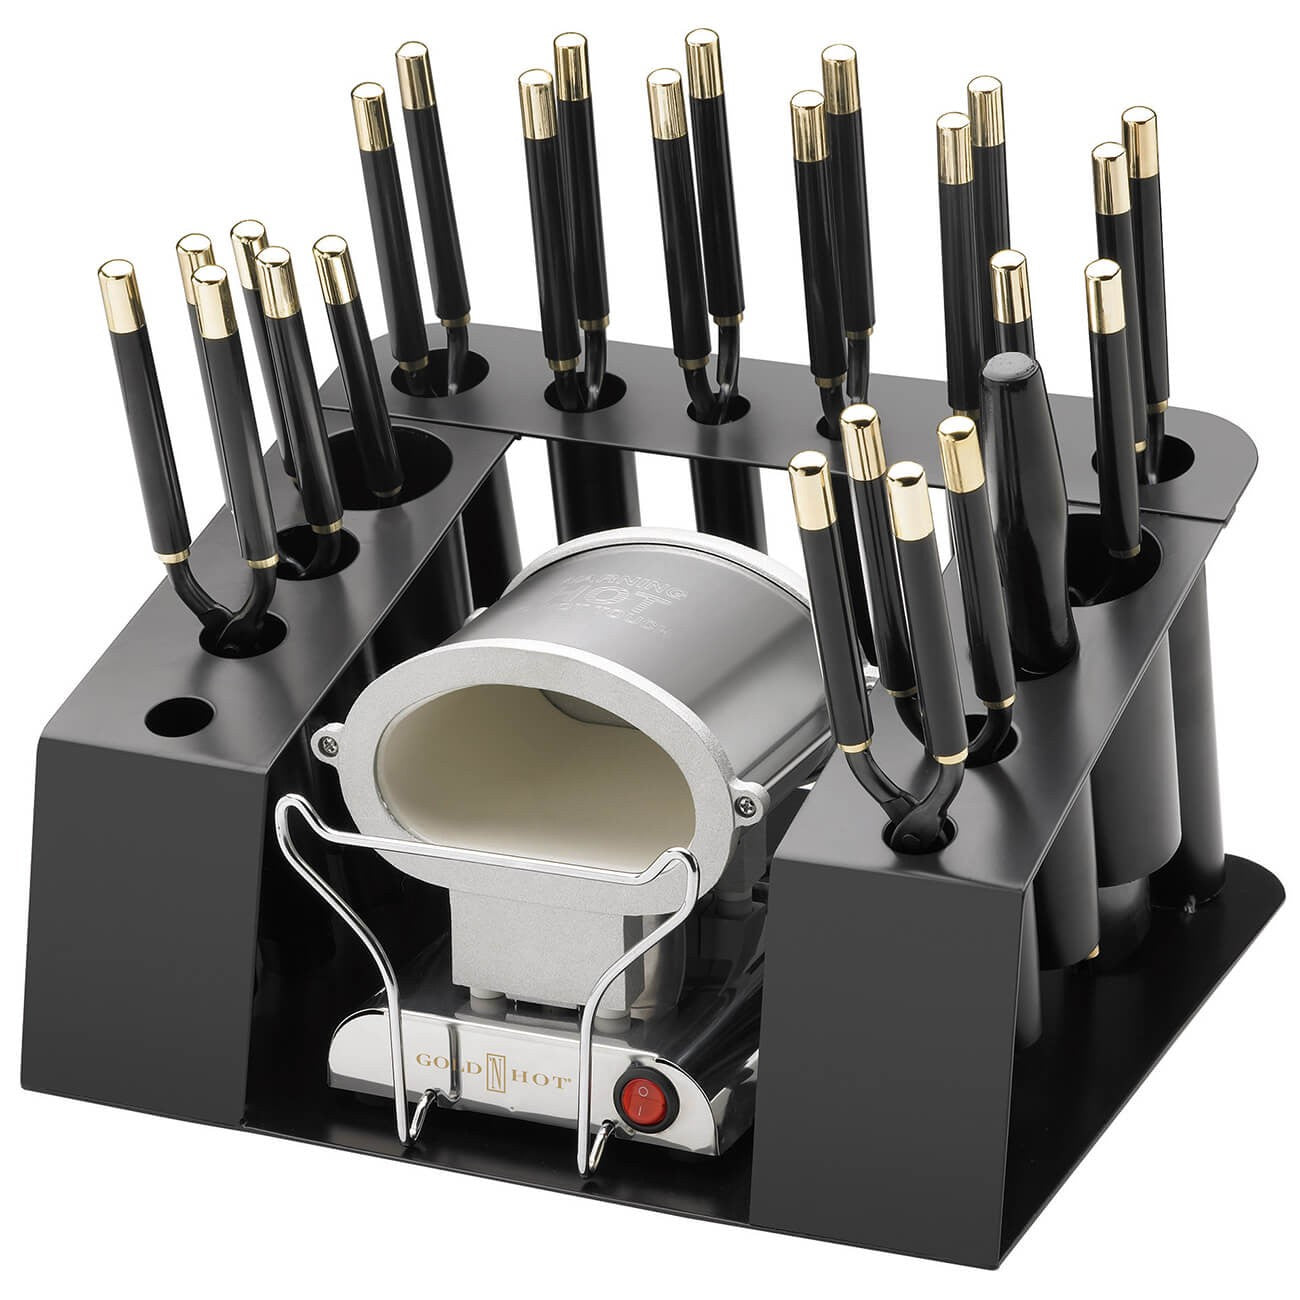 GOLD 'N HOT Professional  16-Piece Stove Iron System